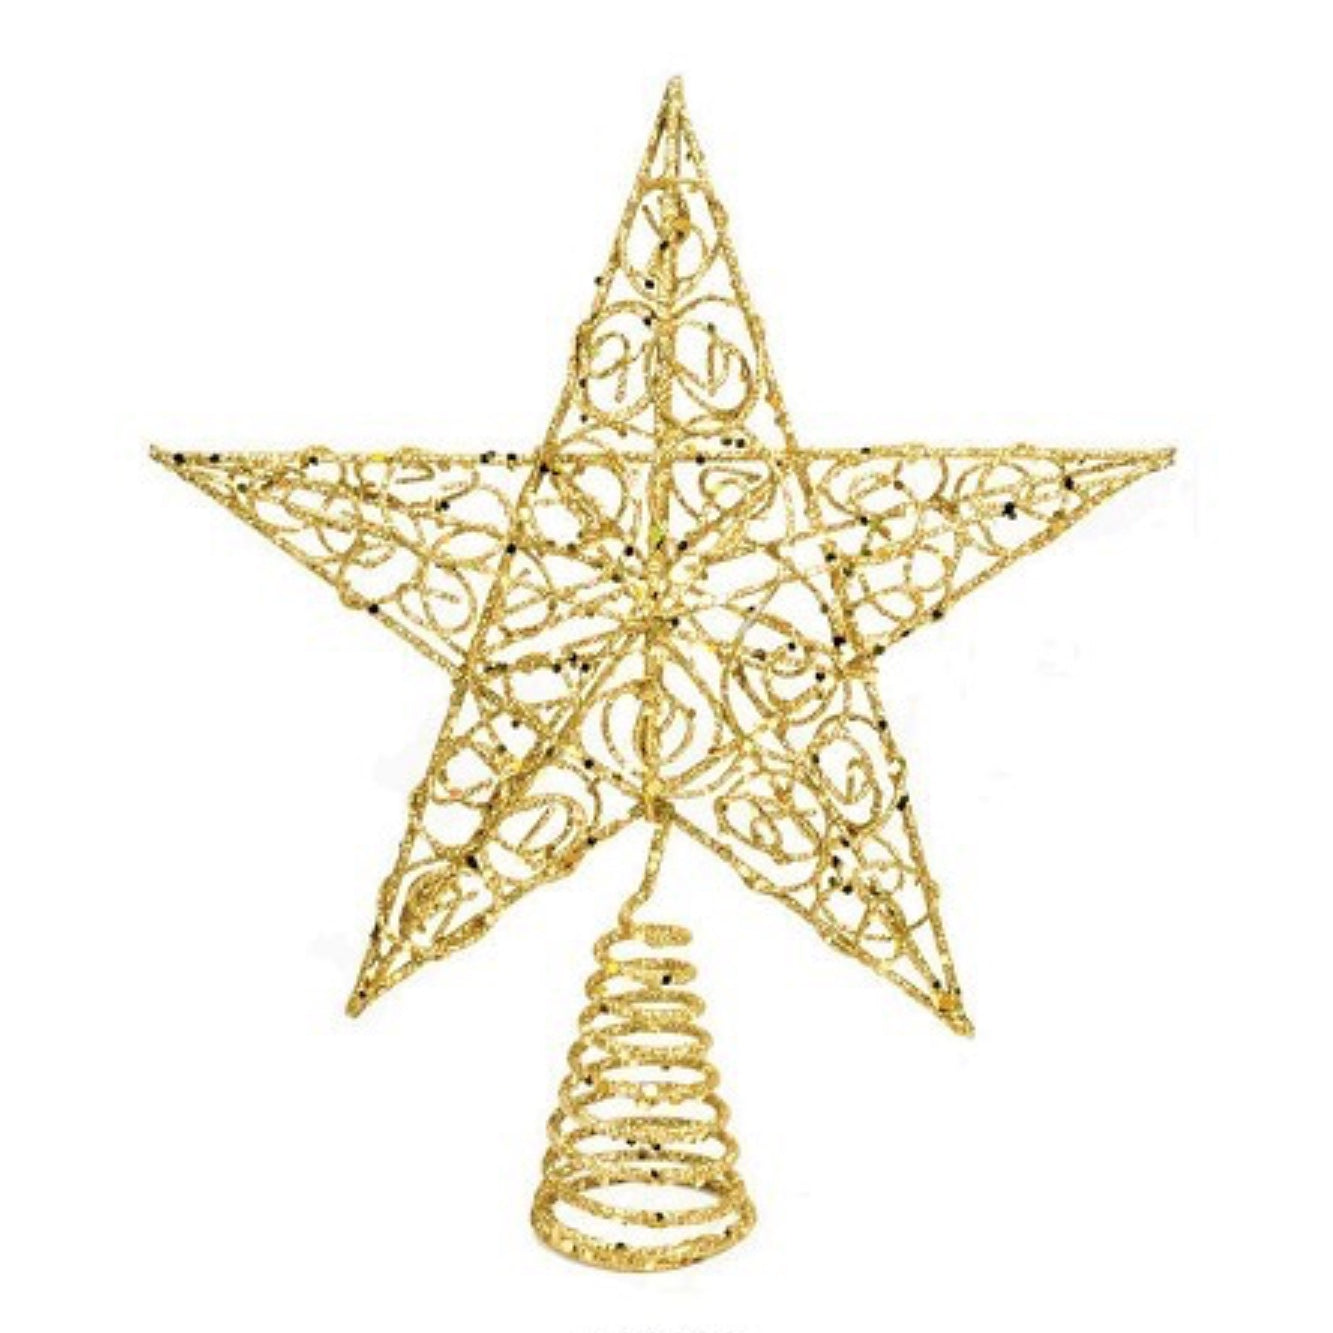 Gold Glittered Wire Tree Topper with Circles | Putti Christmas Canada